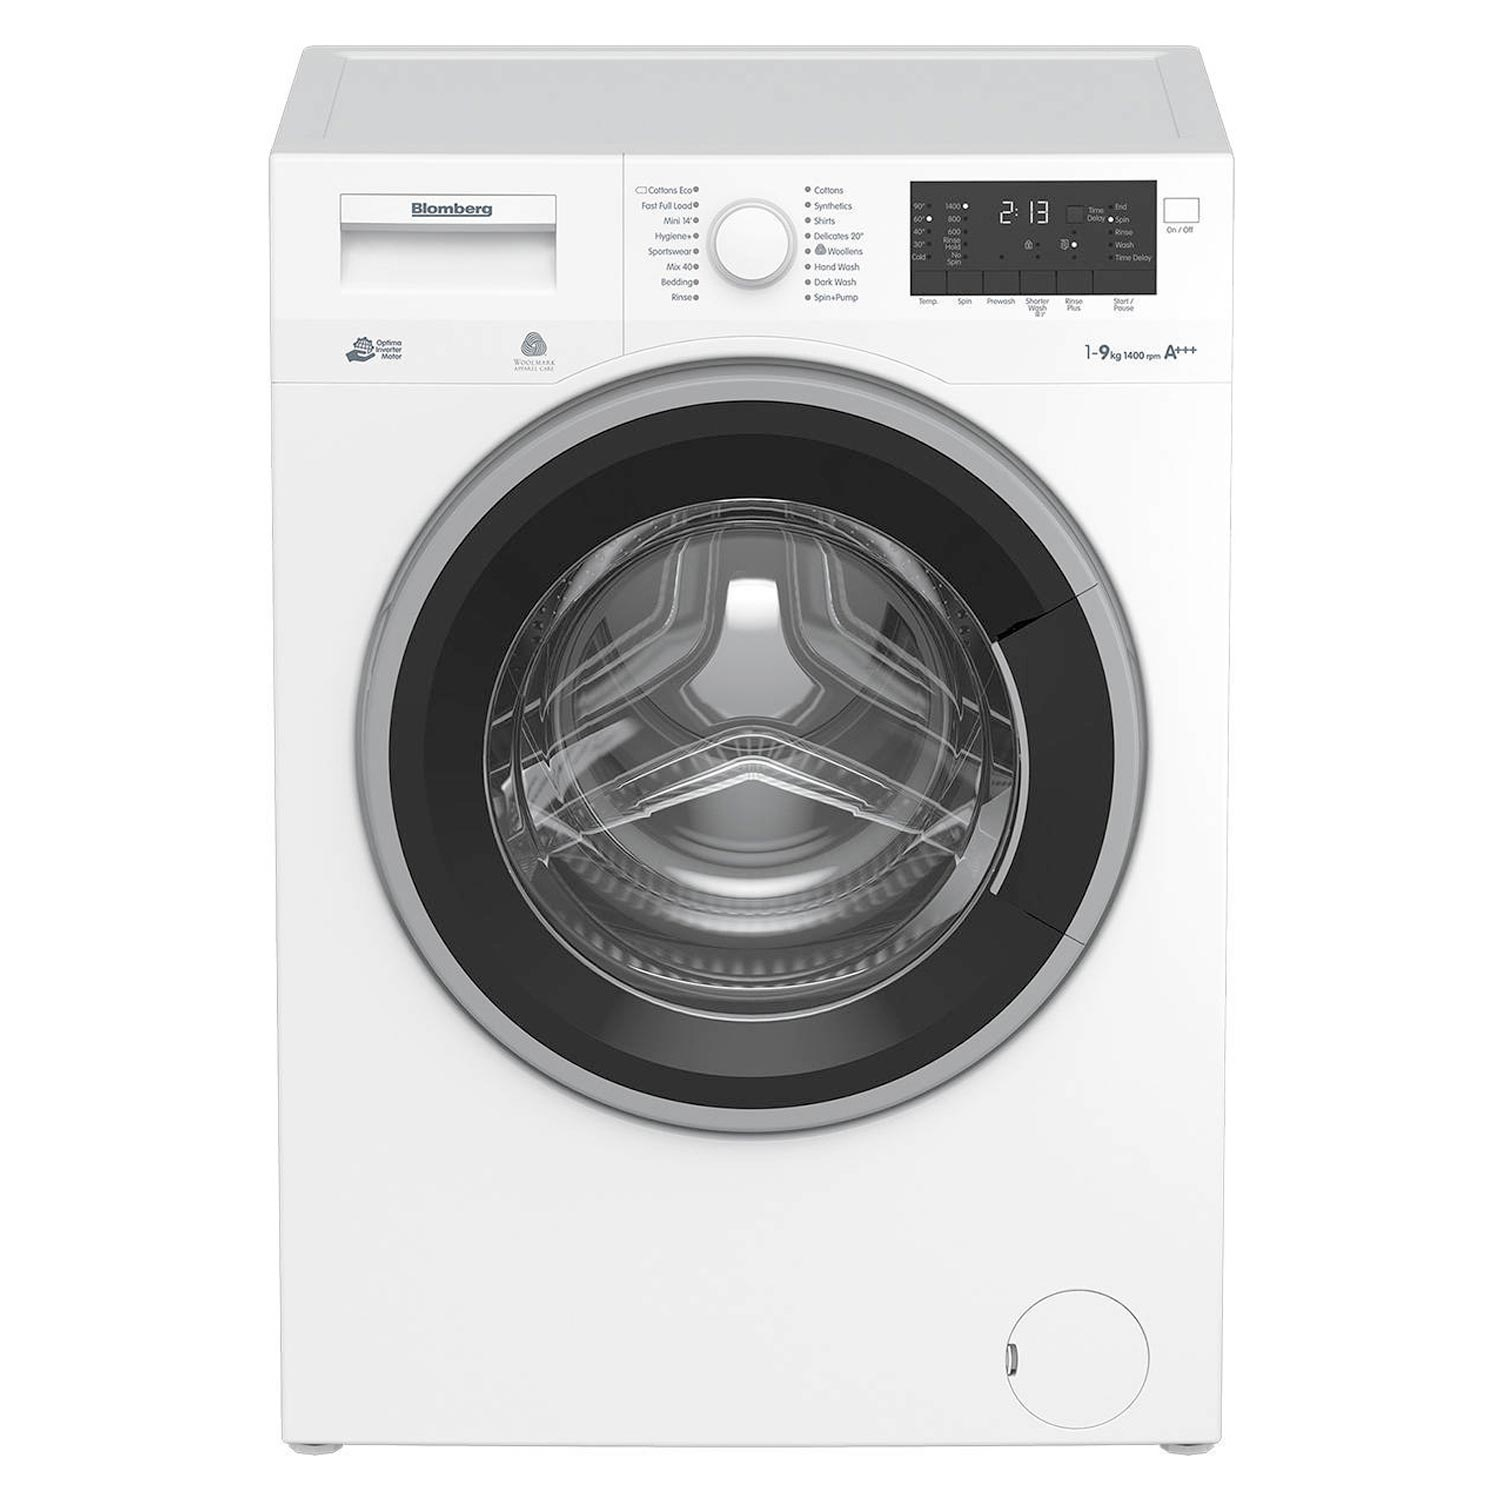 Blomberg LWF29441W9kg 1400 Spin Washing Machine - White - A+++ Rated